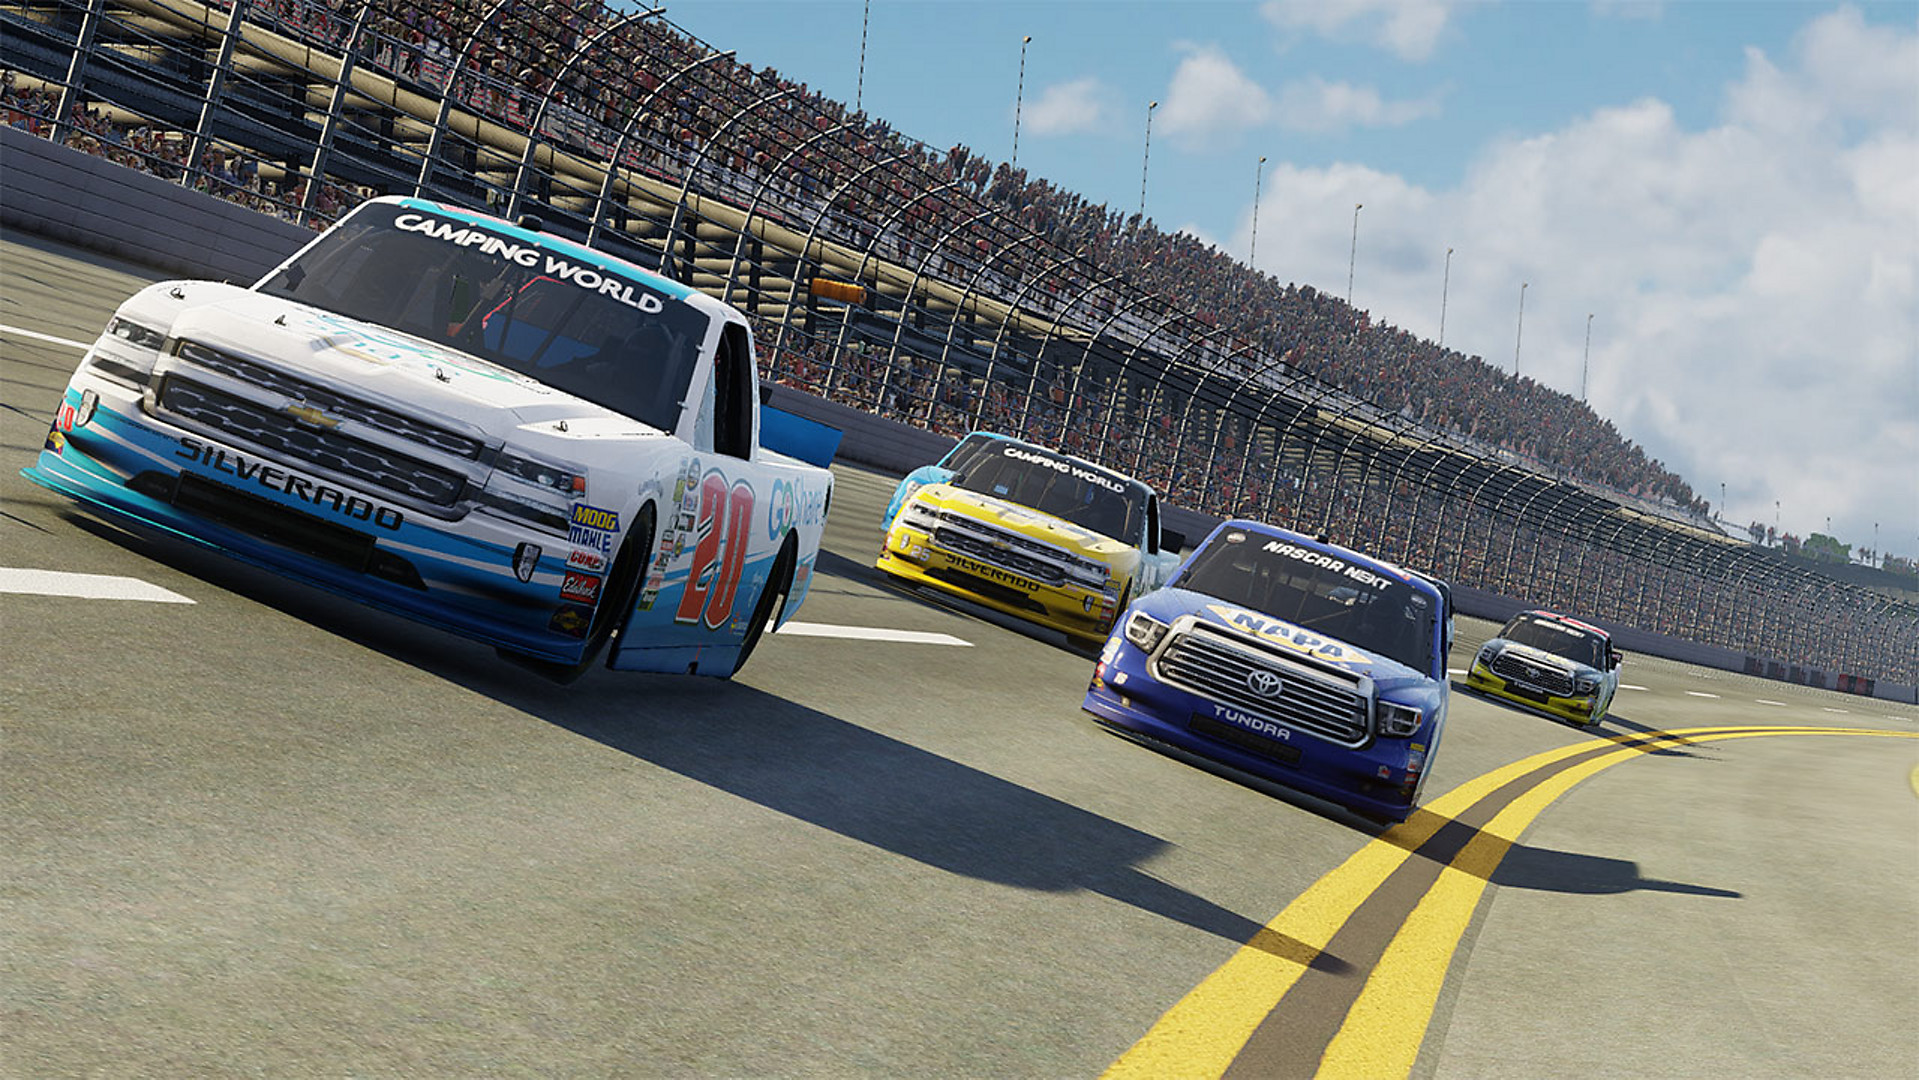 Deeper Career Mode Start Your Own Team Or Sign With Some Of The Biggest Racing Teams In Nascar